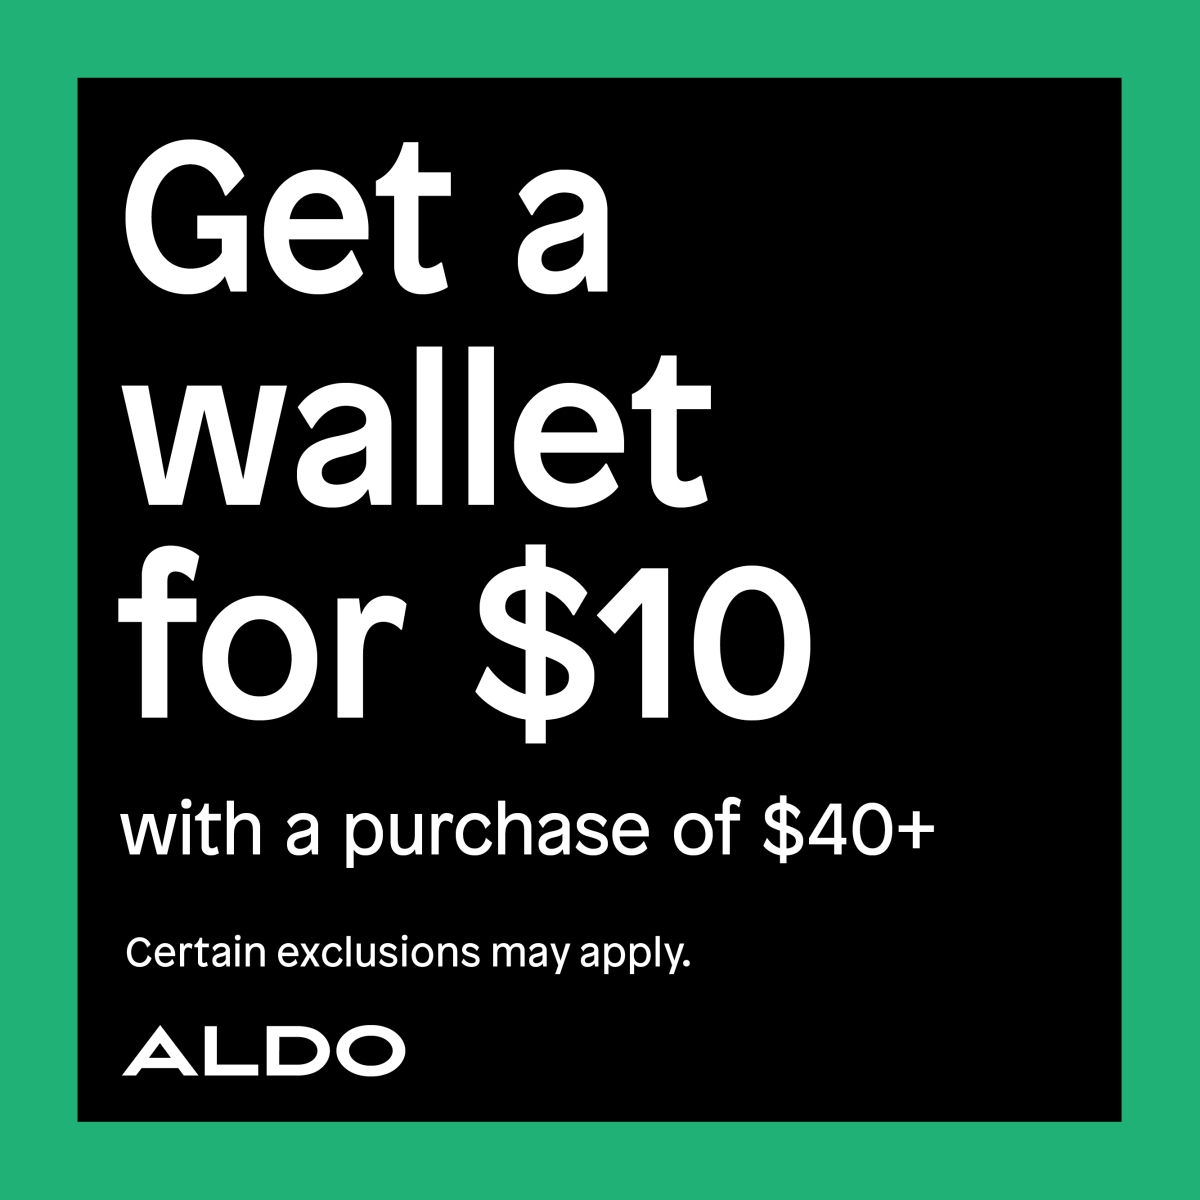 Get a wallet for $10 with a purchase of $40 or more. from ALDO